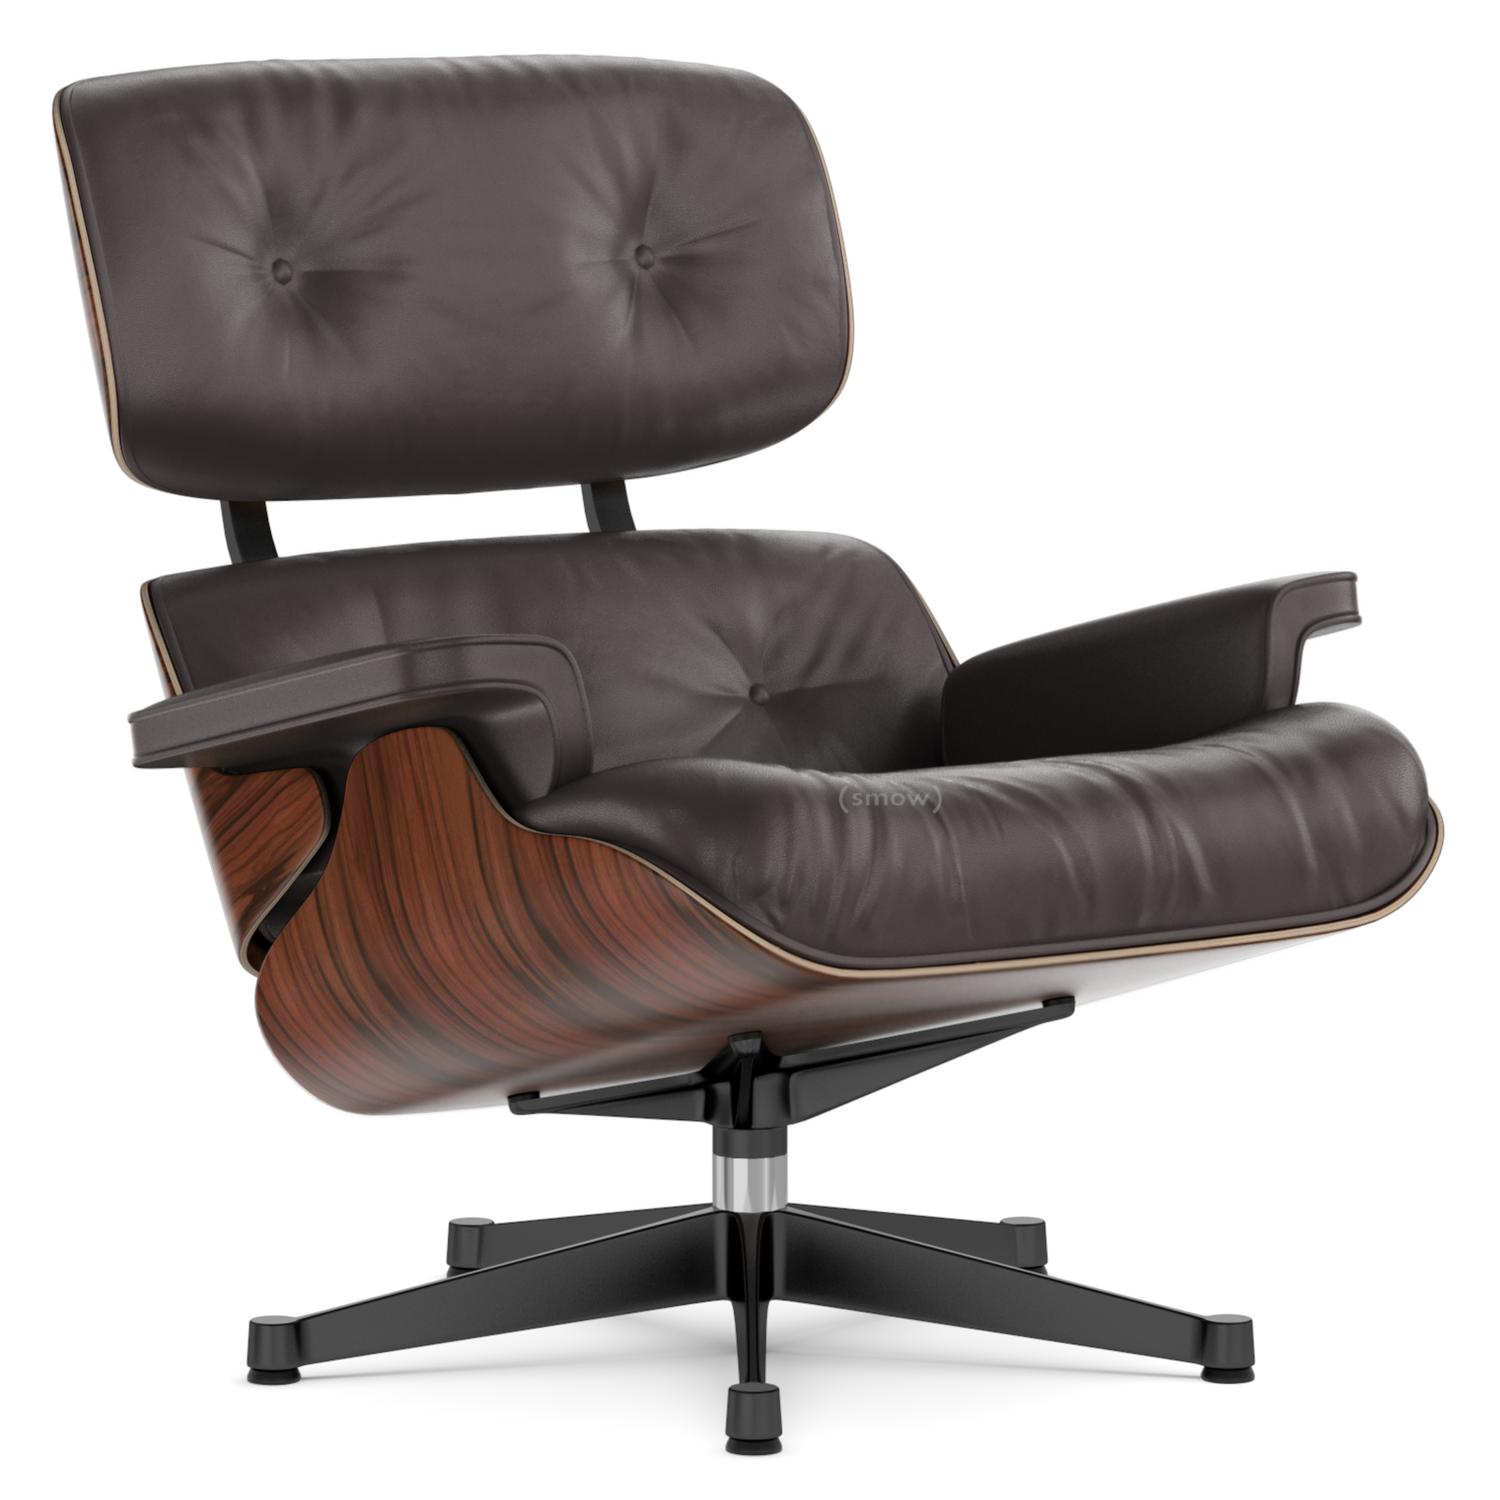 eames lounge chair and ottoman original. Black Bedroom Furniture Sets. Home Design Ideas